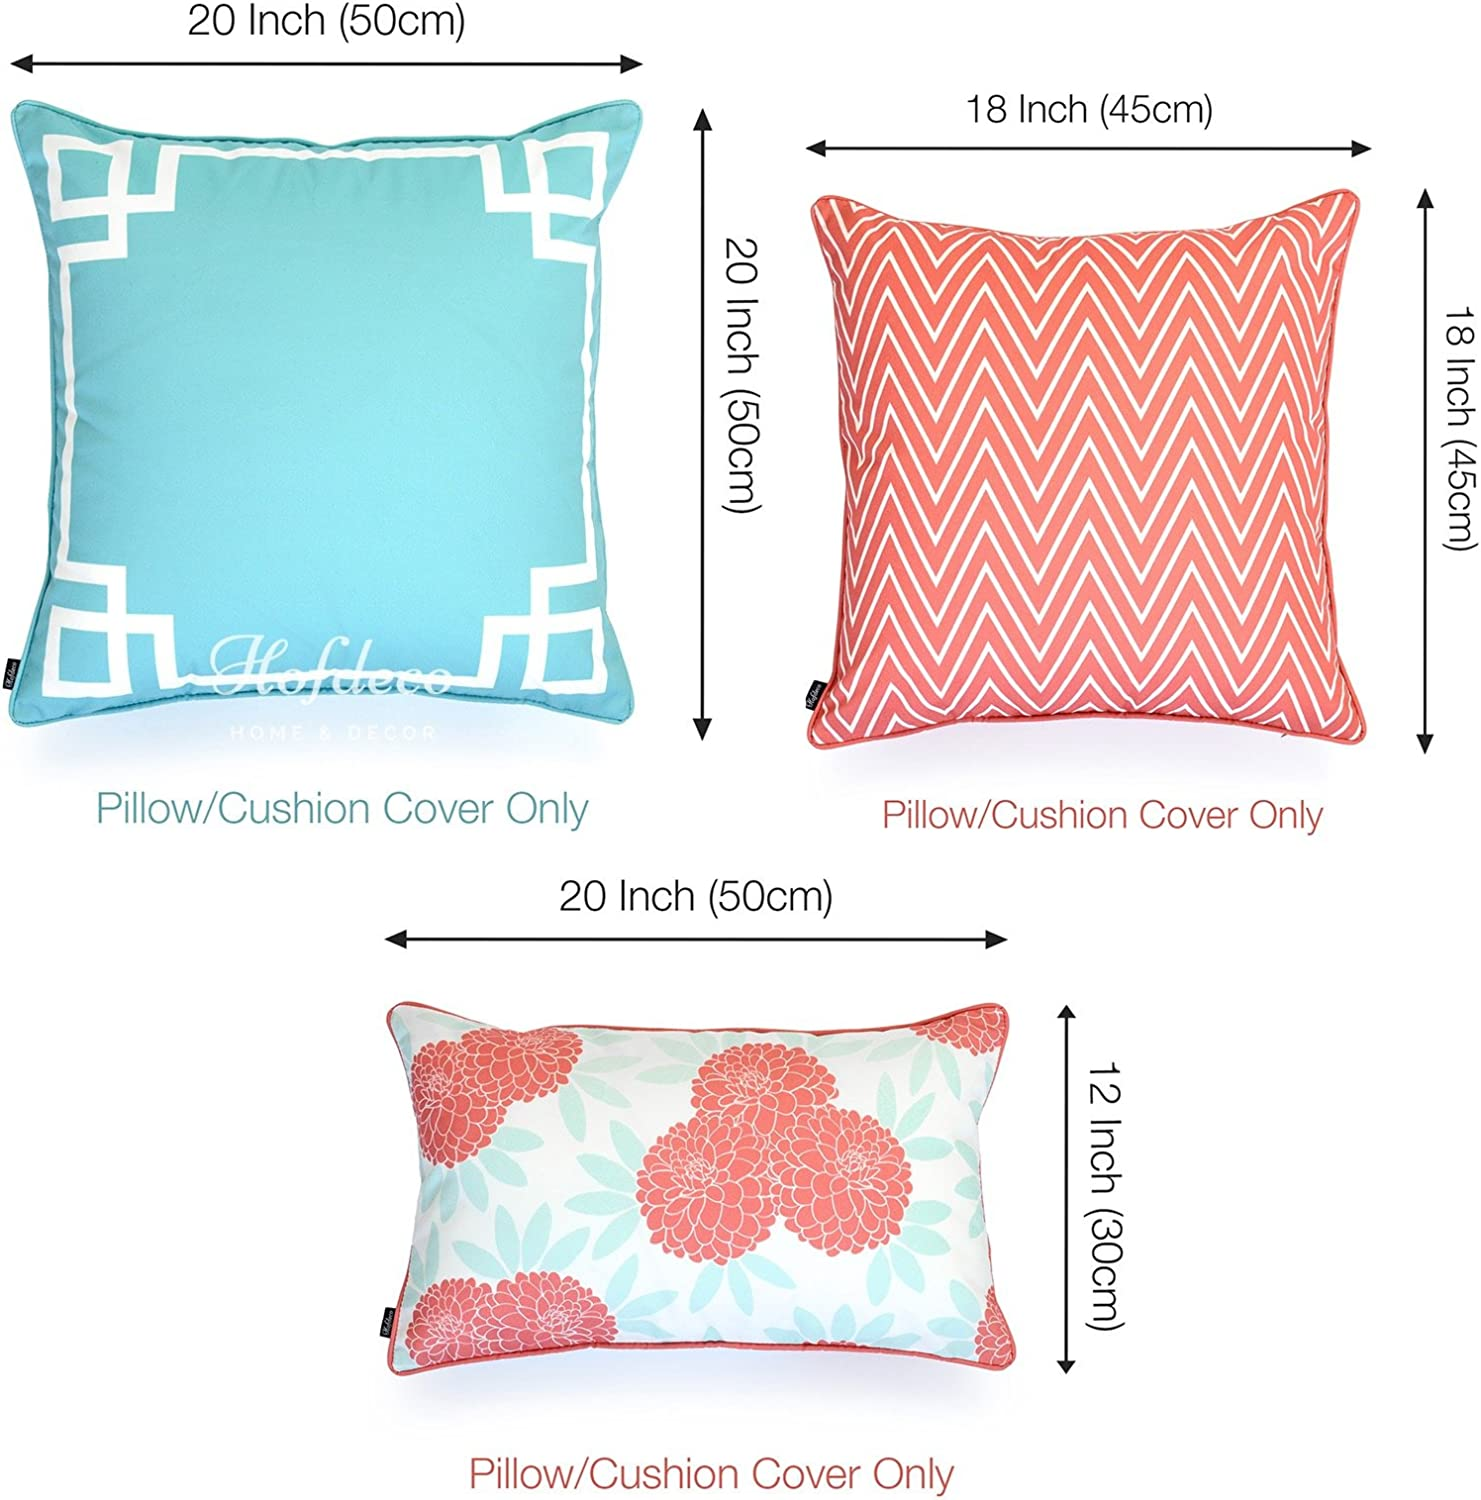 Hofdeco Spring Indoor Outdoor Pillow Cover Only Water Resistant For Patio Lounge Sofa Aqua Coral Pink Greek Key Chevron Floral 18 X18 20 X20 12 X20 Set Of 3 Garden Outdoor